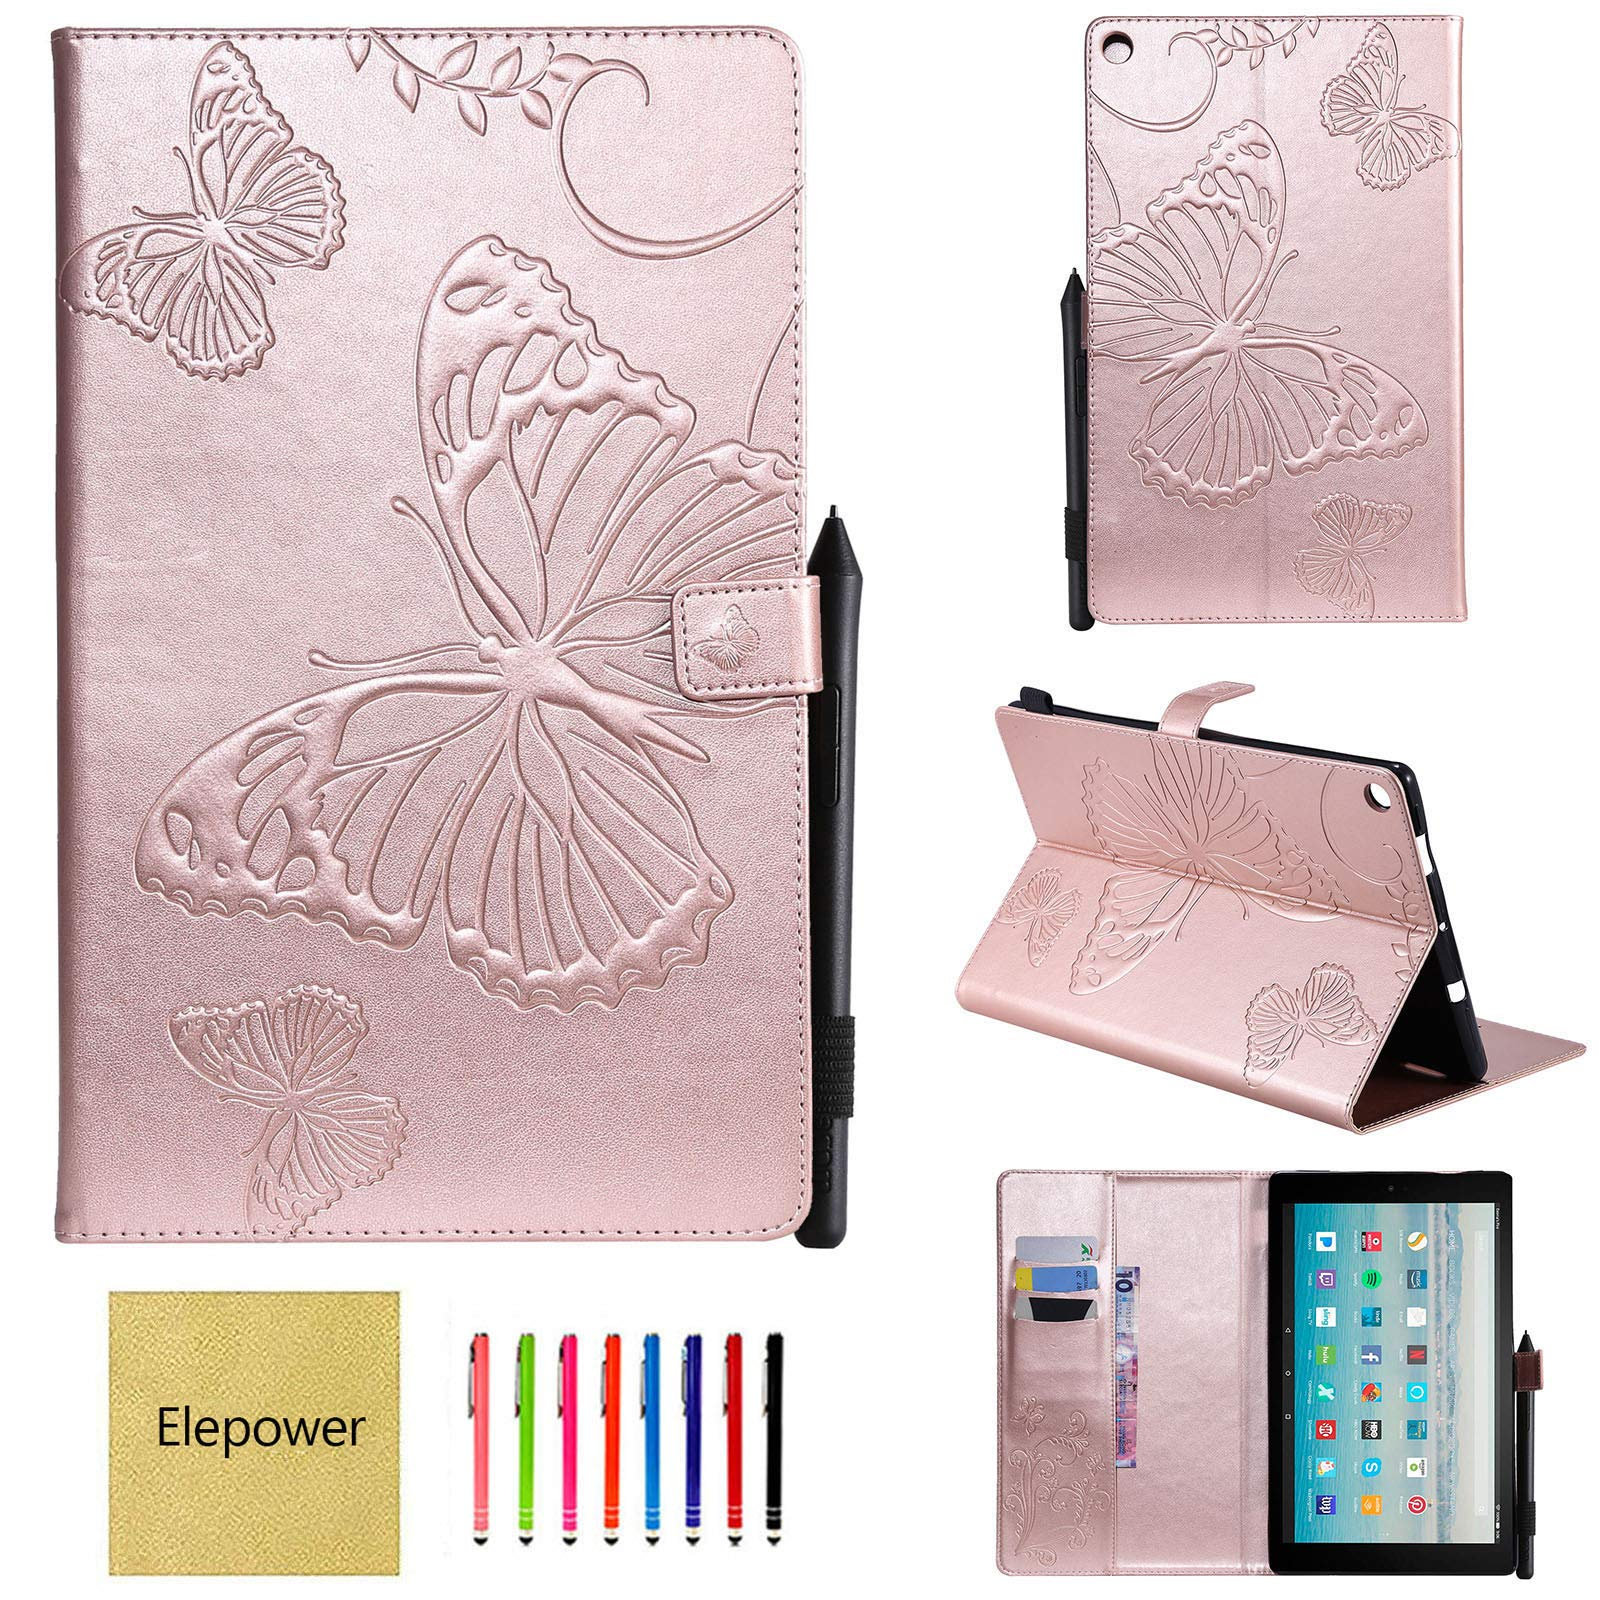 All-New Fire HD 10 Tablet(7th Generation/9th Generation, 2017/2019 Release), Elepower Butterfly Embossed Folio Folding Stand Cover with Card Stylus Holder for Kindle 10.1 Inch Tablet, Rosegold